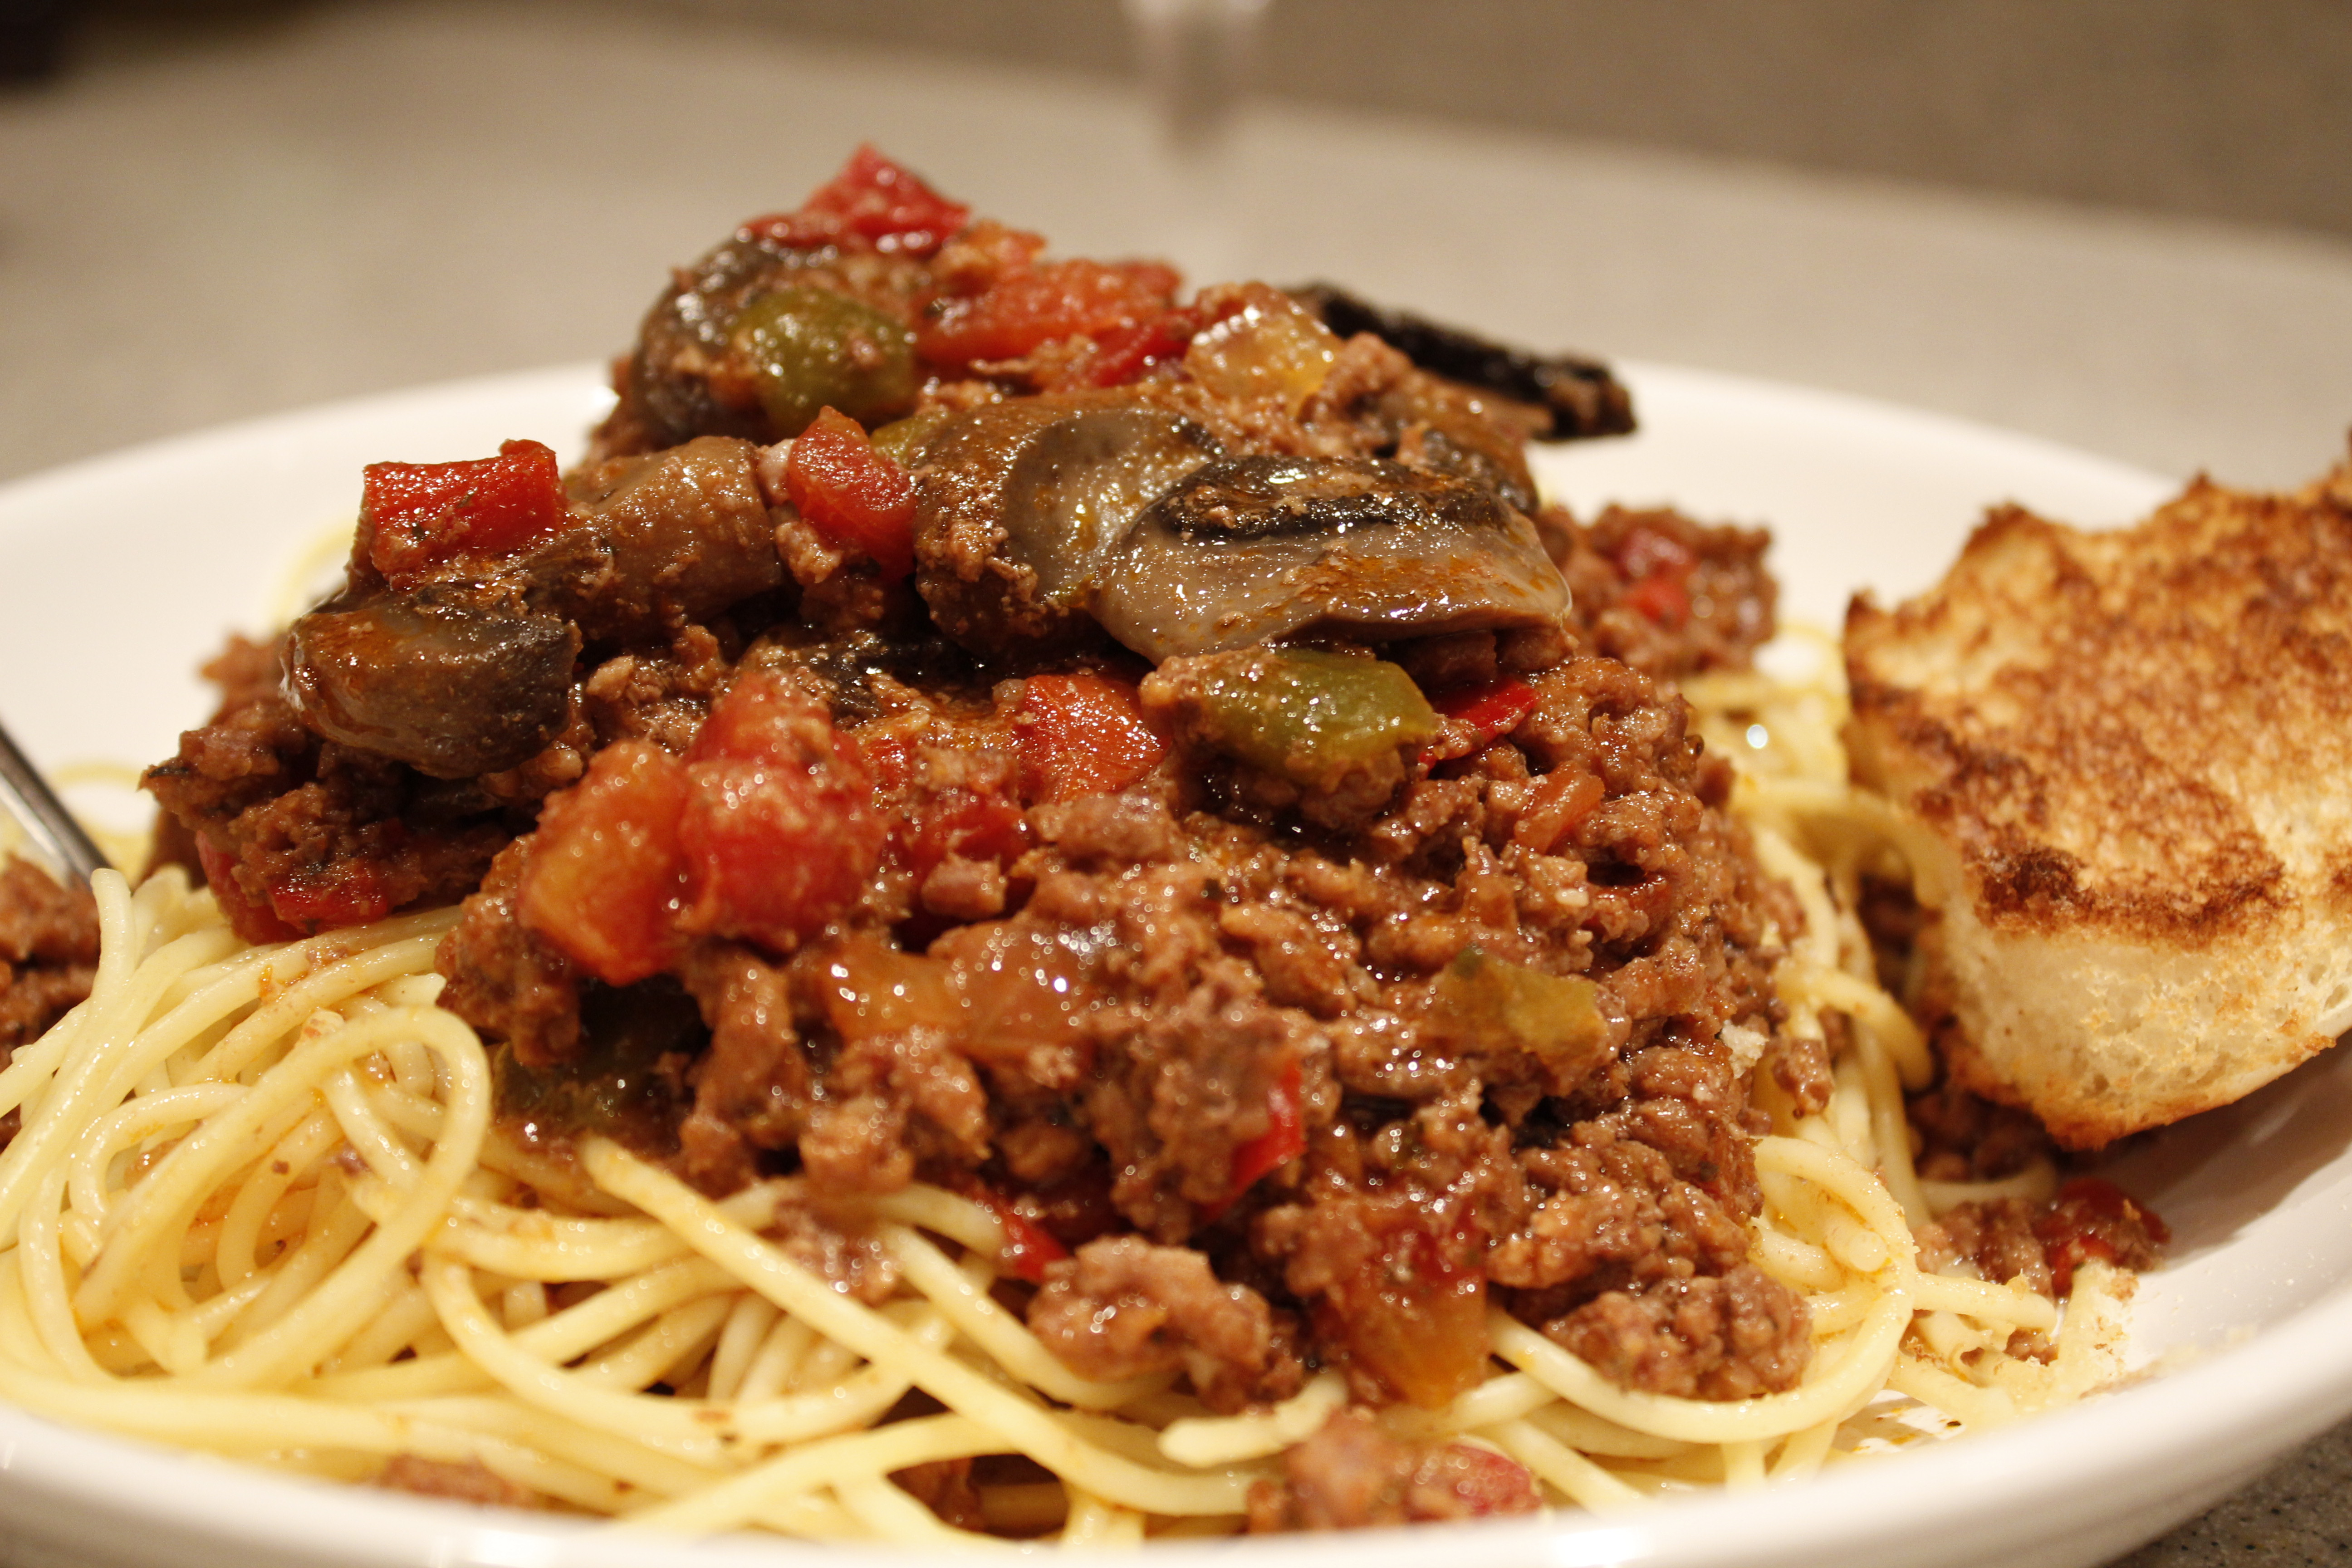 Cathy's Slow-Cooked Meat Sauce on Pasta | Jesben